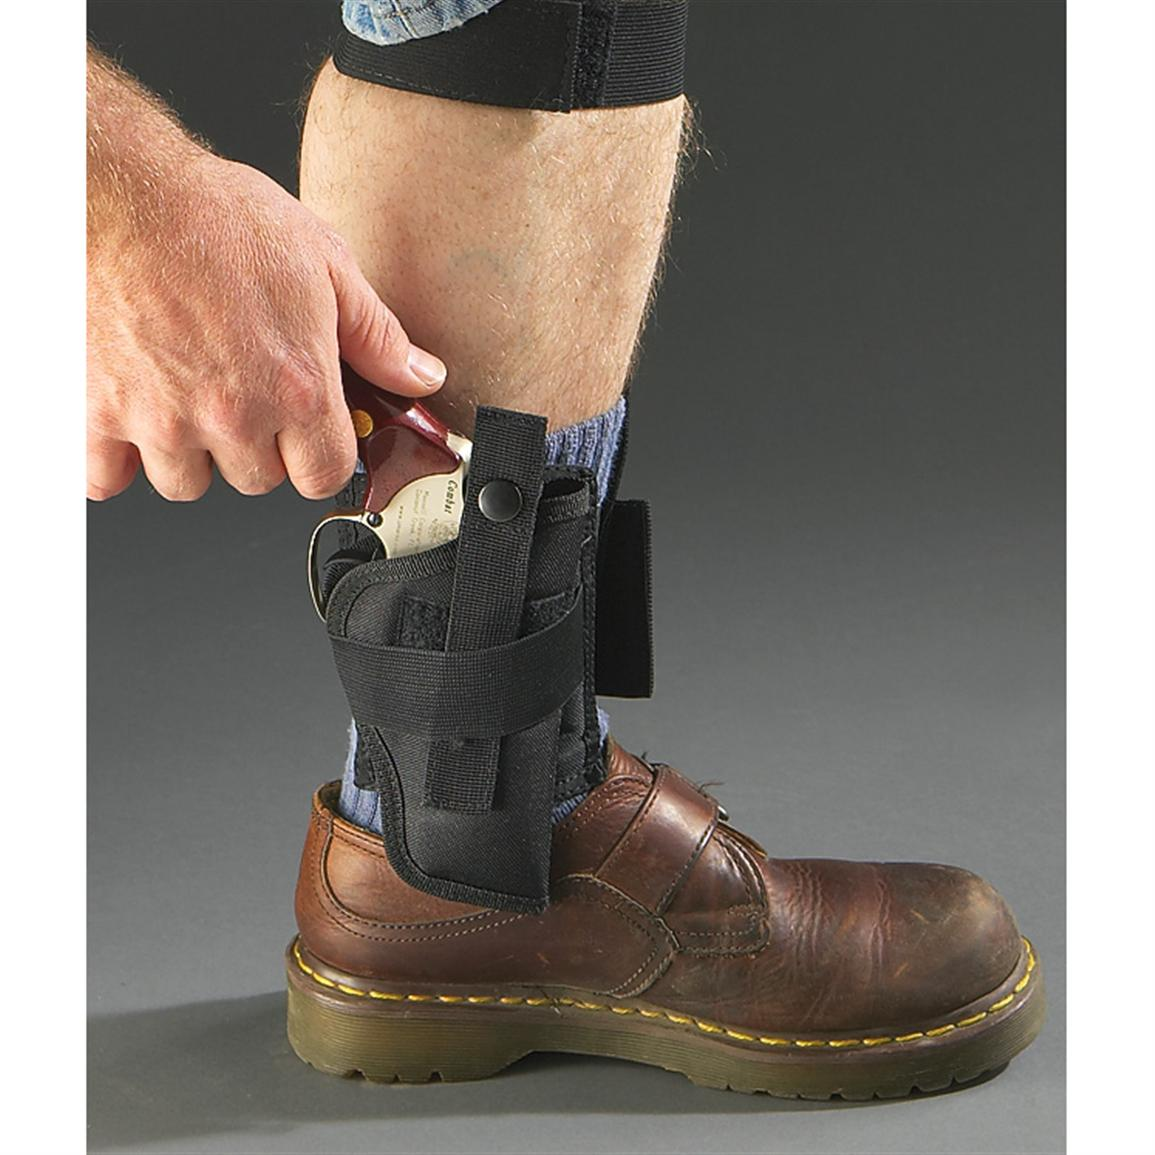 Python® Ankle Holster with Calf Strap, Black